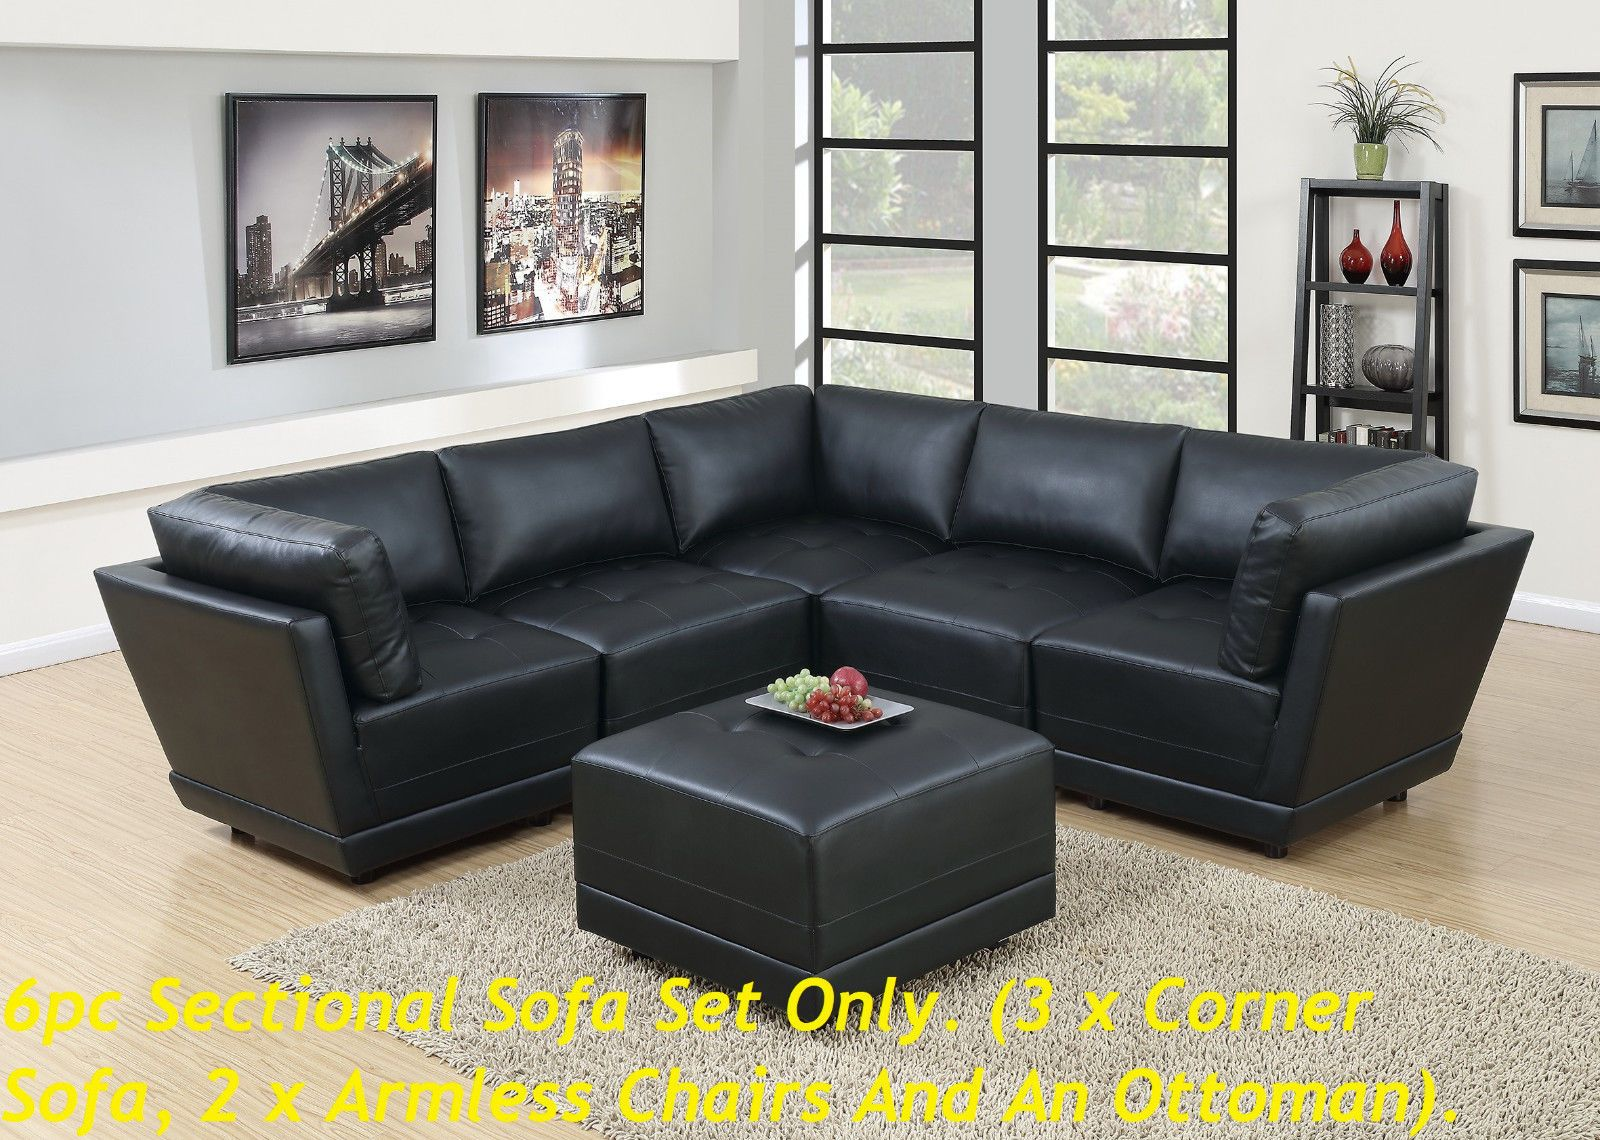 Black Bonded Leather Modular Sectional Sofa 6pc Set Tufted Seat Cushion Corners